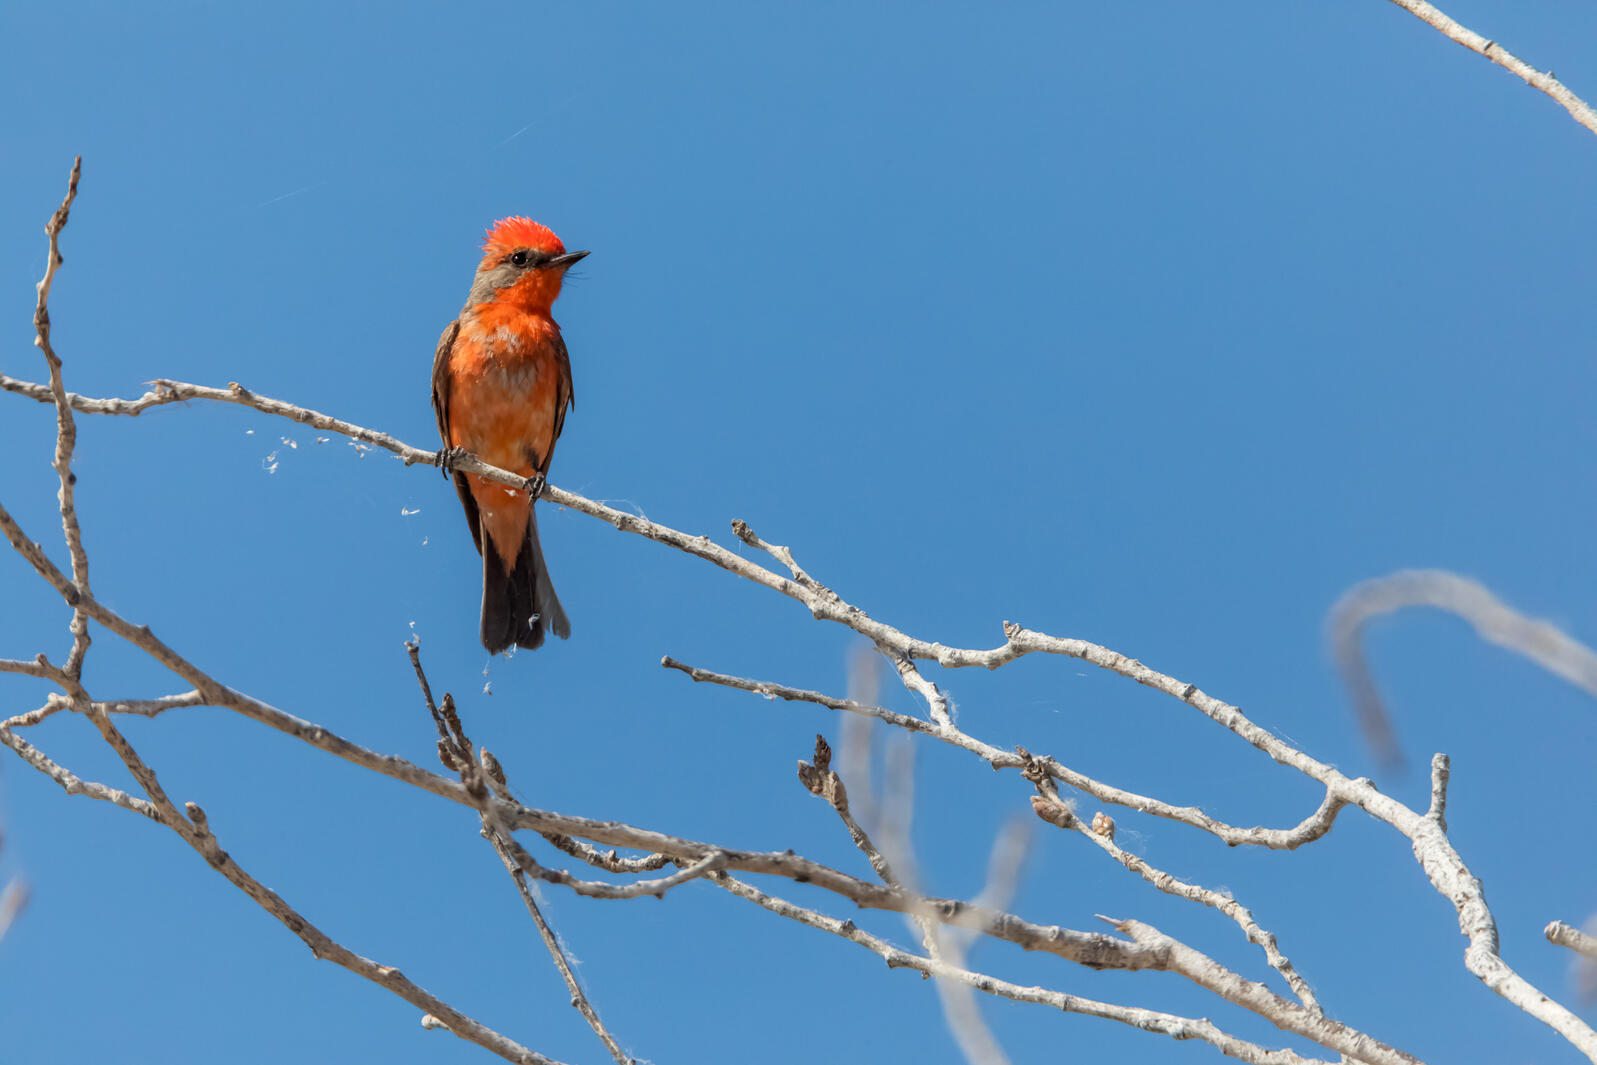 A bright red Vermilion Flycatcher perches on a tree branch against a clear blue sky.